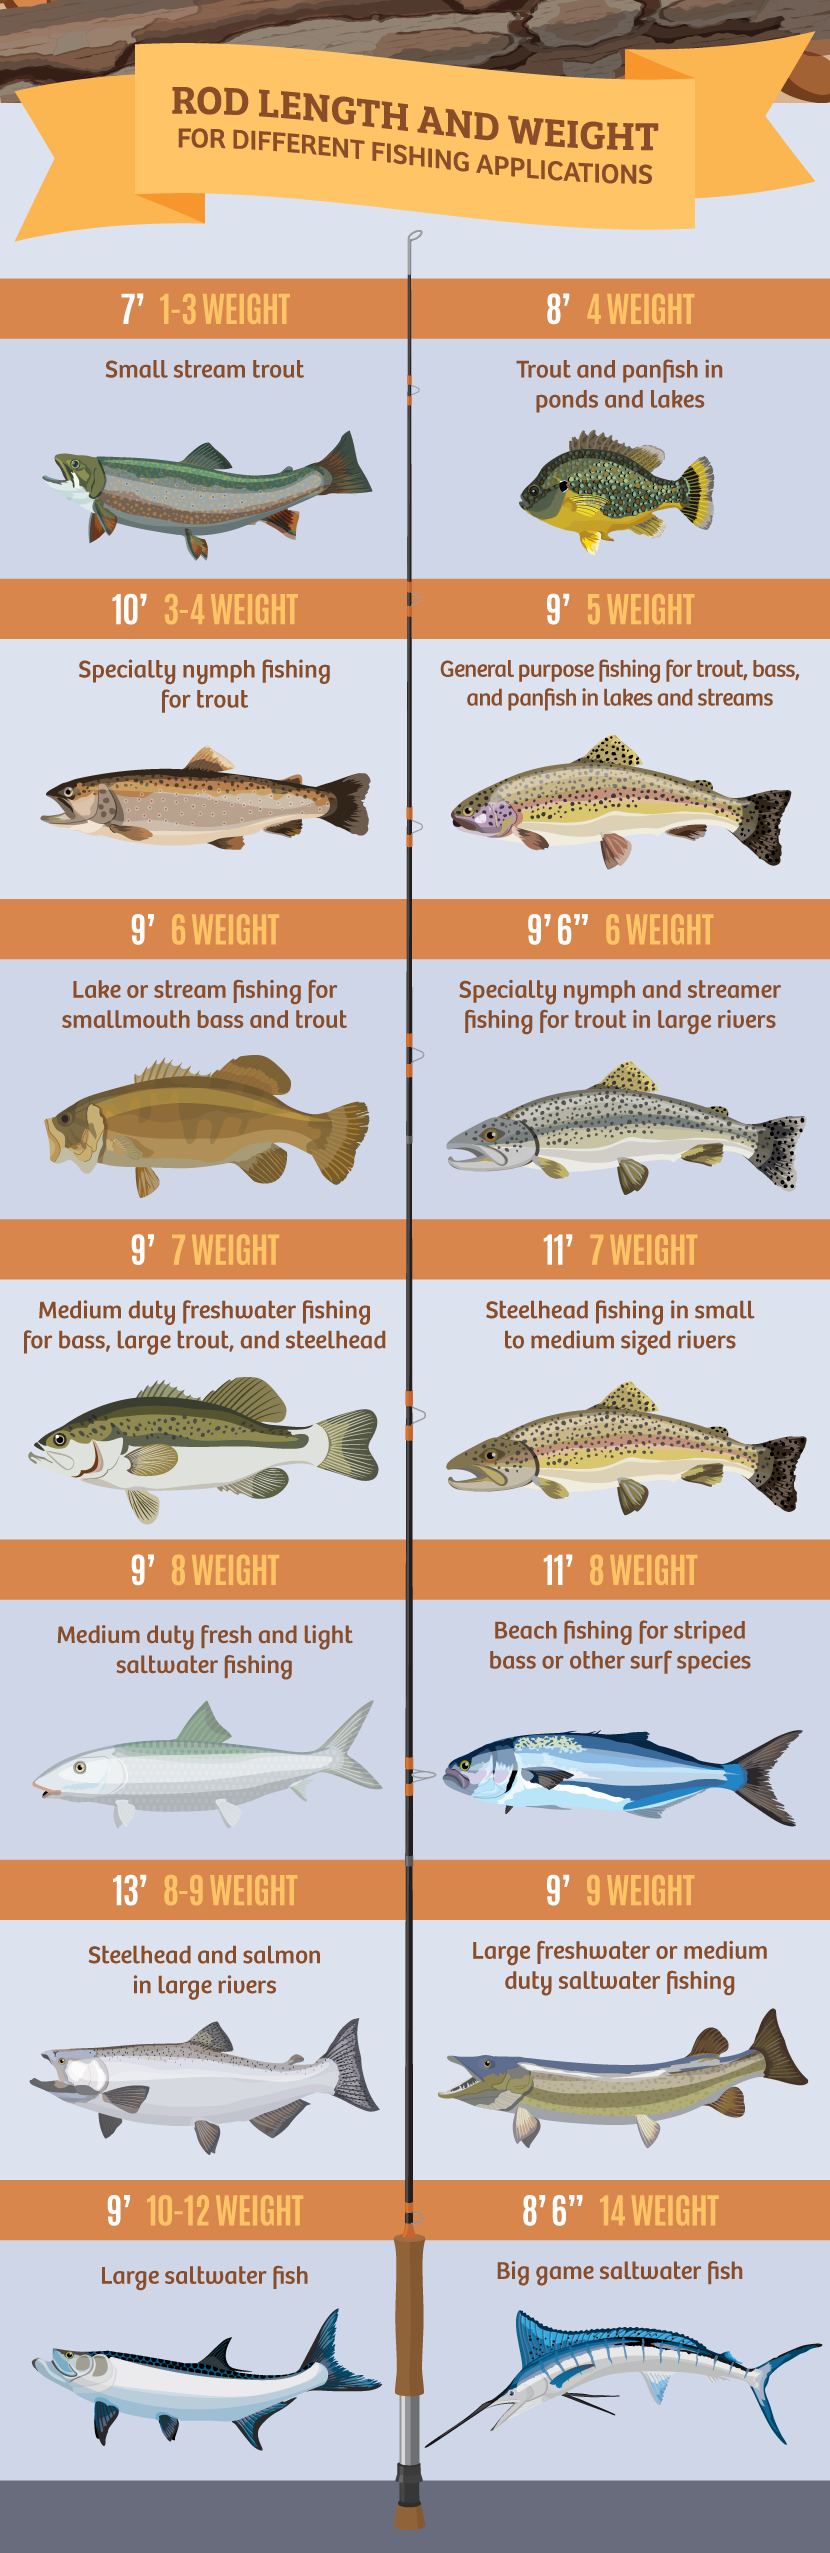 Rod Length and Weight by Fishing Application - Choosing the Right Fly Fishing Outfit